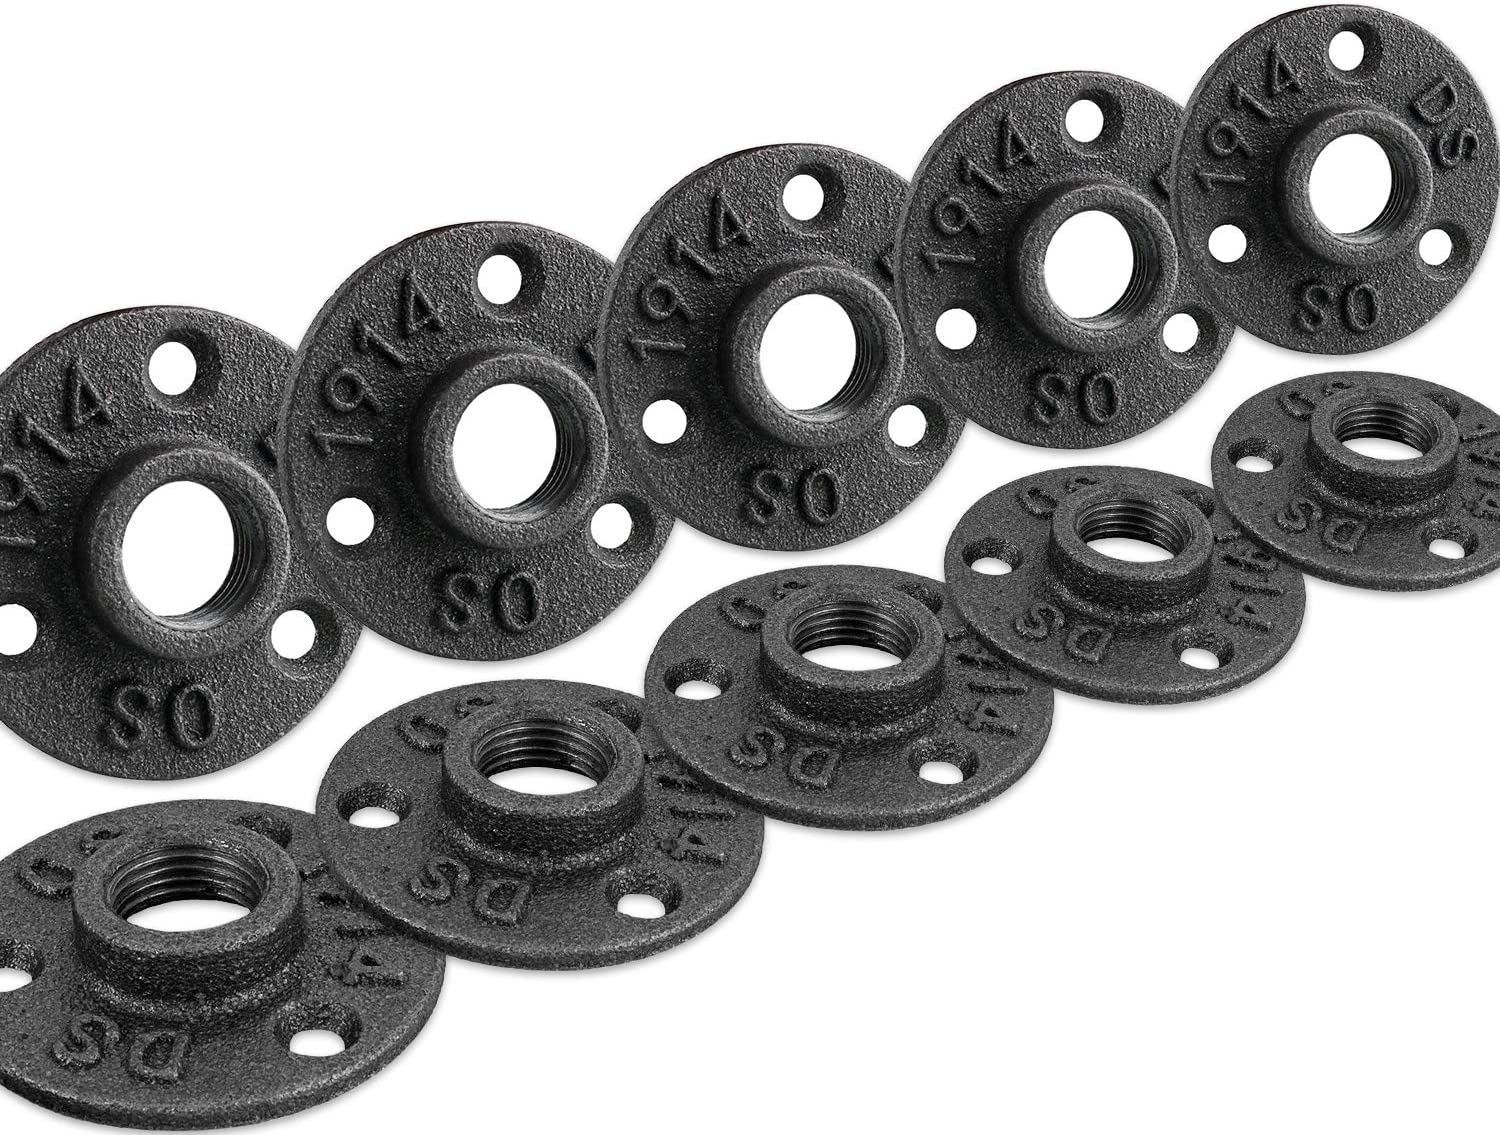 """1"""" Floor Flange, Home TZH Malleable iron Pipe Fittings for Industrial vintage style, Flanges with Threaded Hole for DIY Project /Furniture/ Shelving Decoration (10 Pack)"""